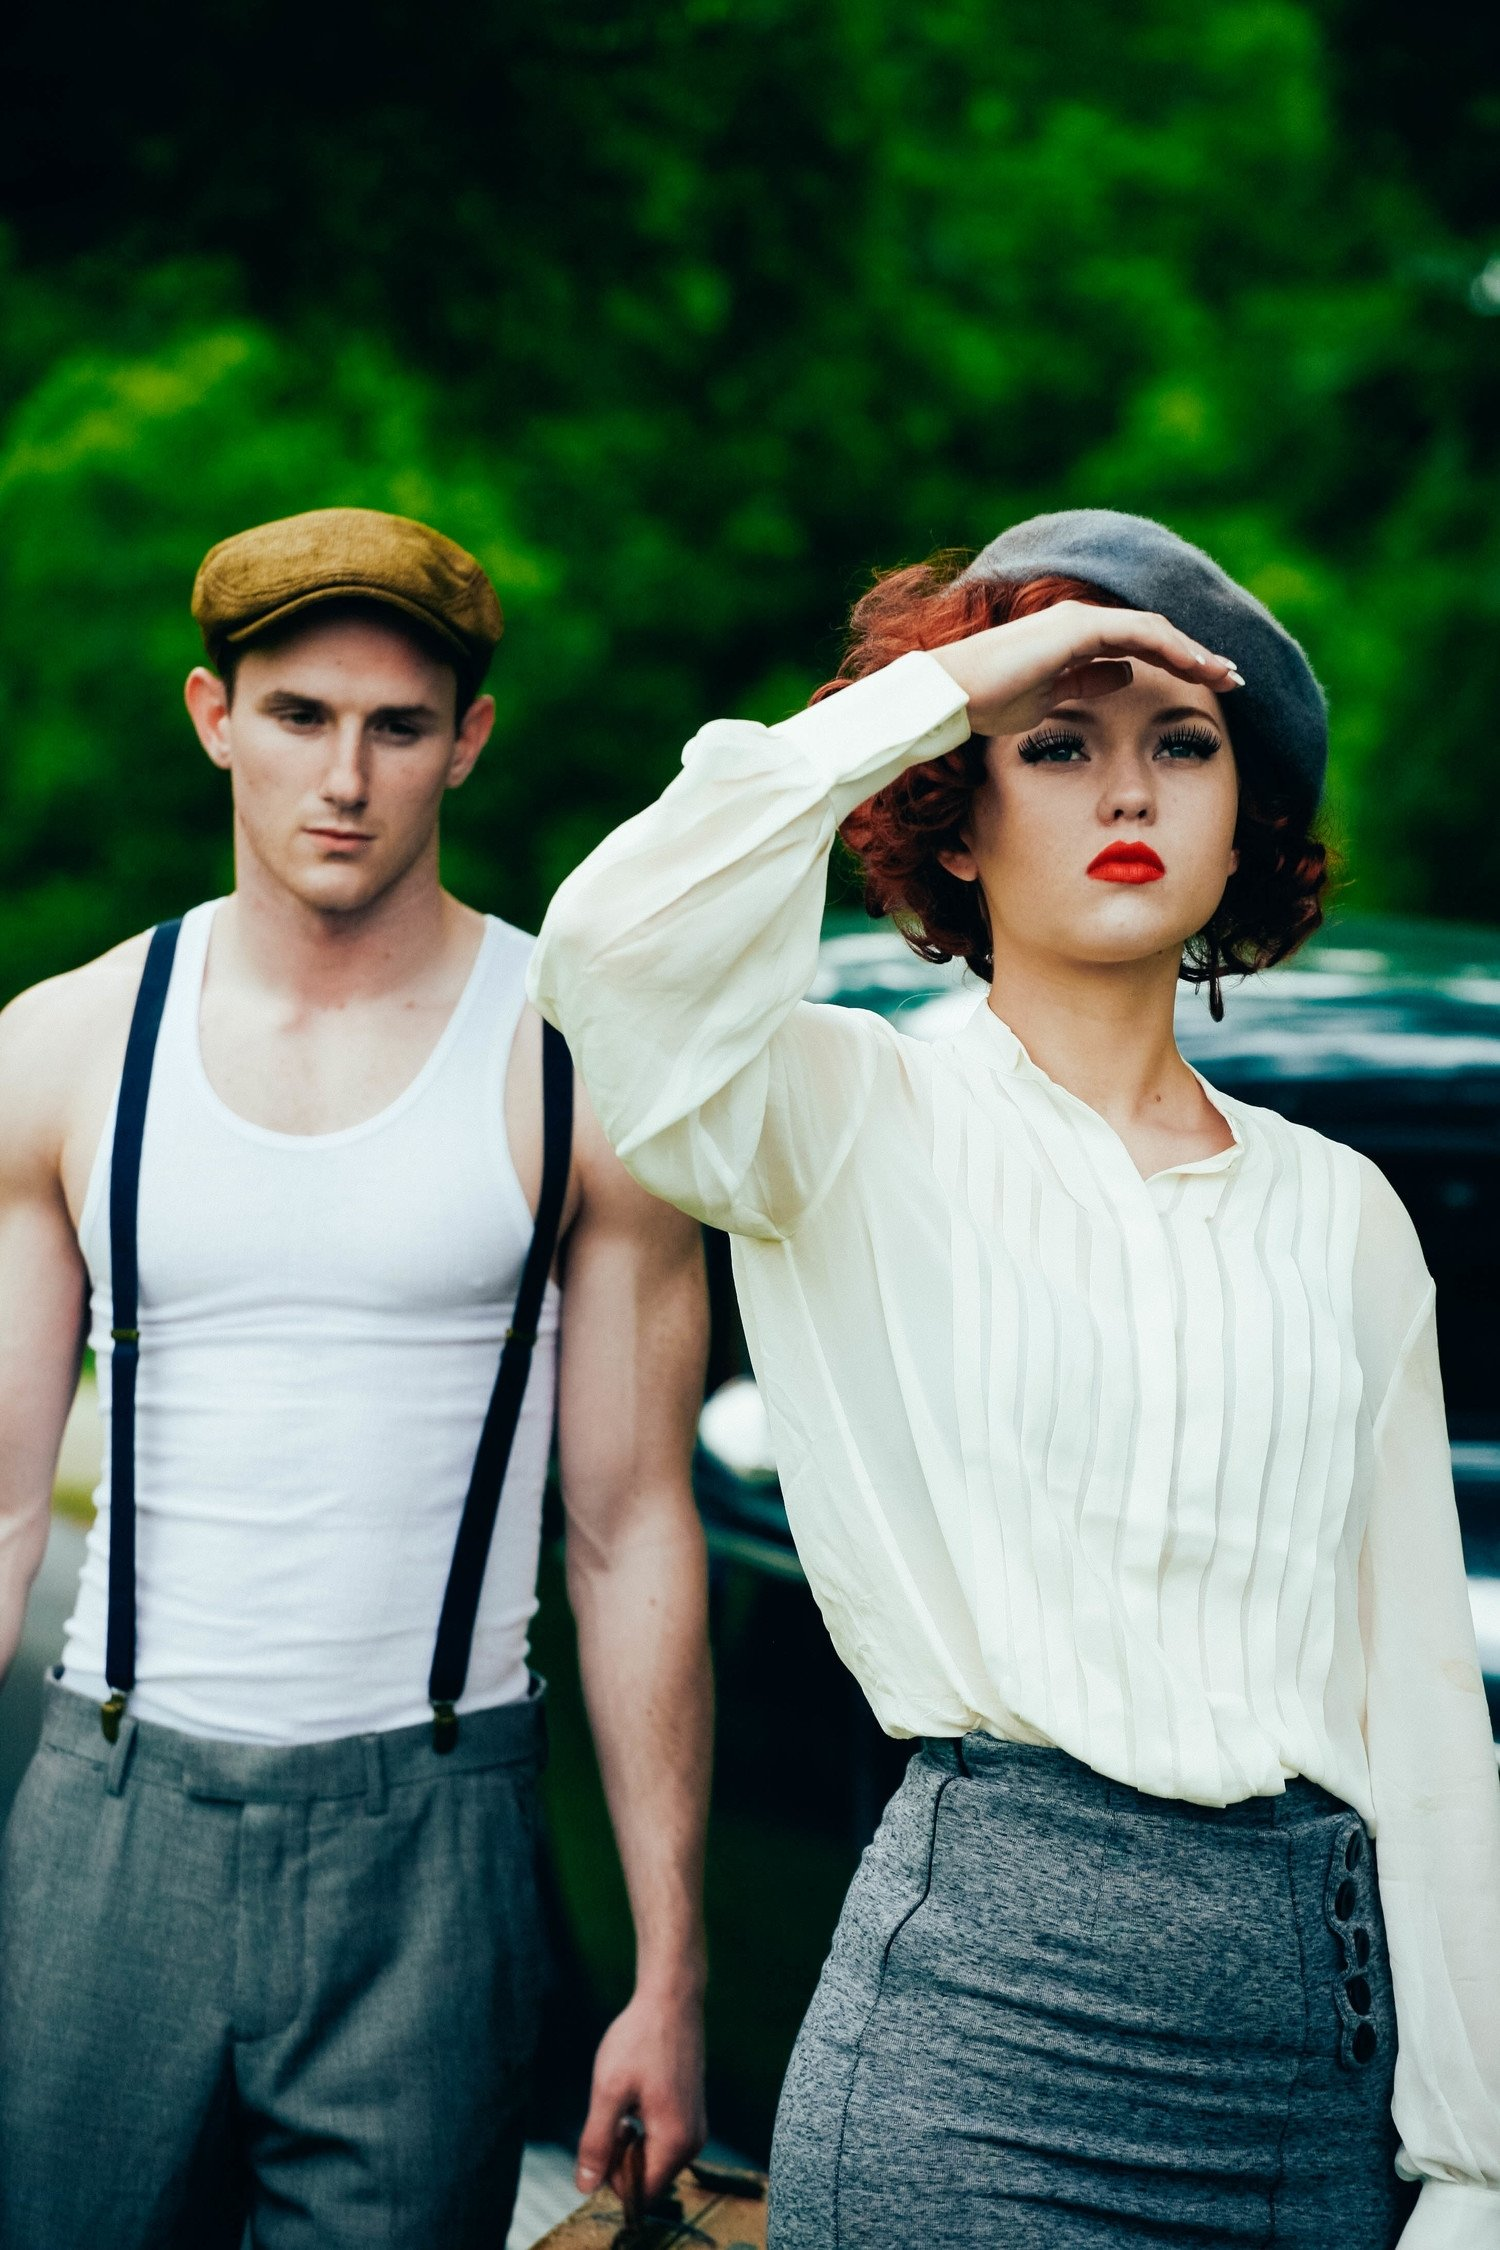 10 Trendy Bonnie And Clyde Costumes Ideas bonnie and clyde photos google search bonnie clyde shoot